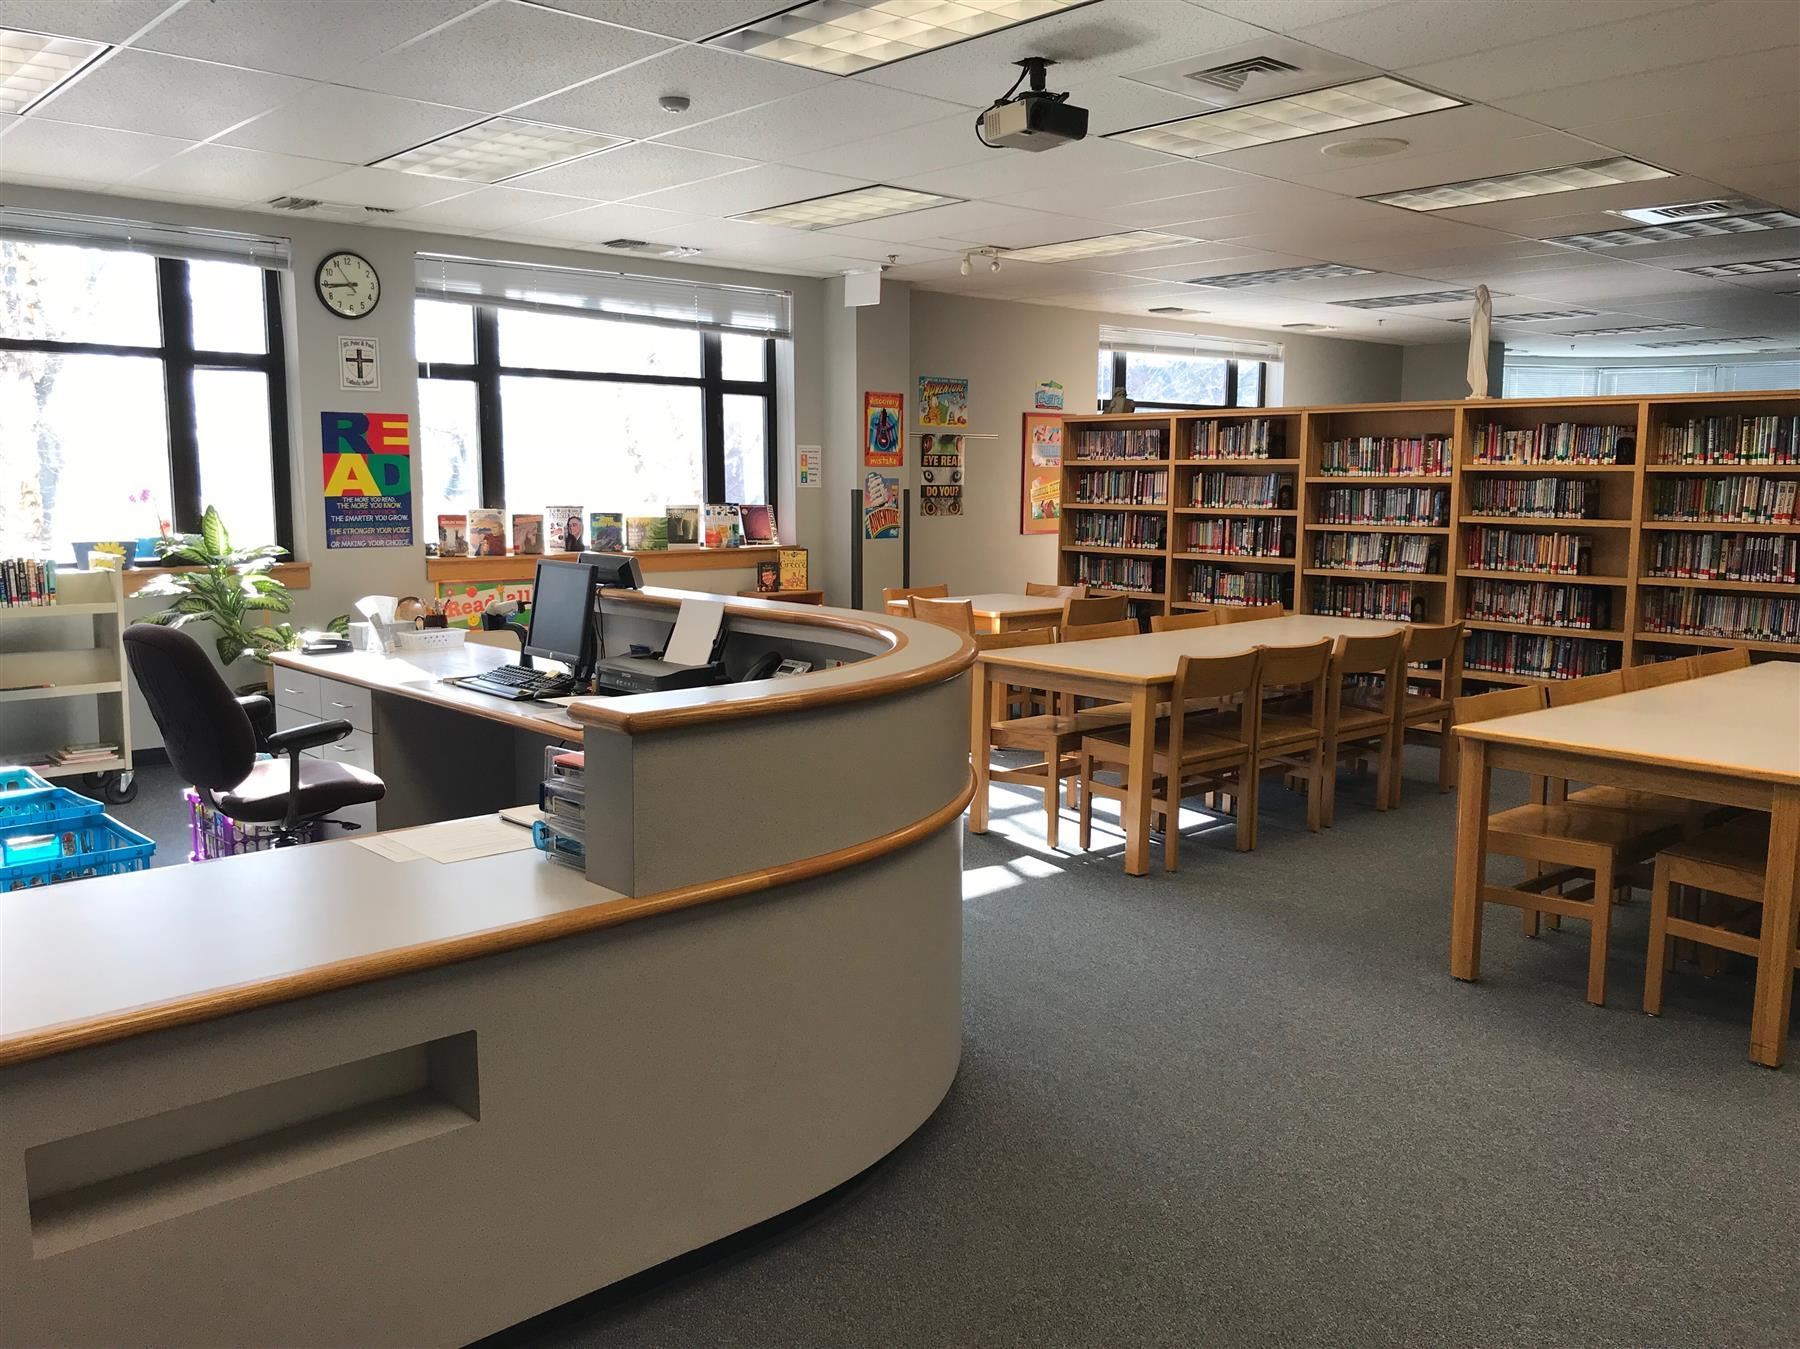 SS. Peter and Paul Catholic School Library